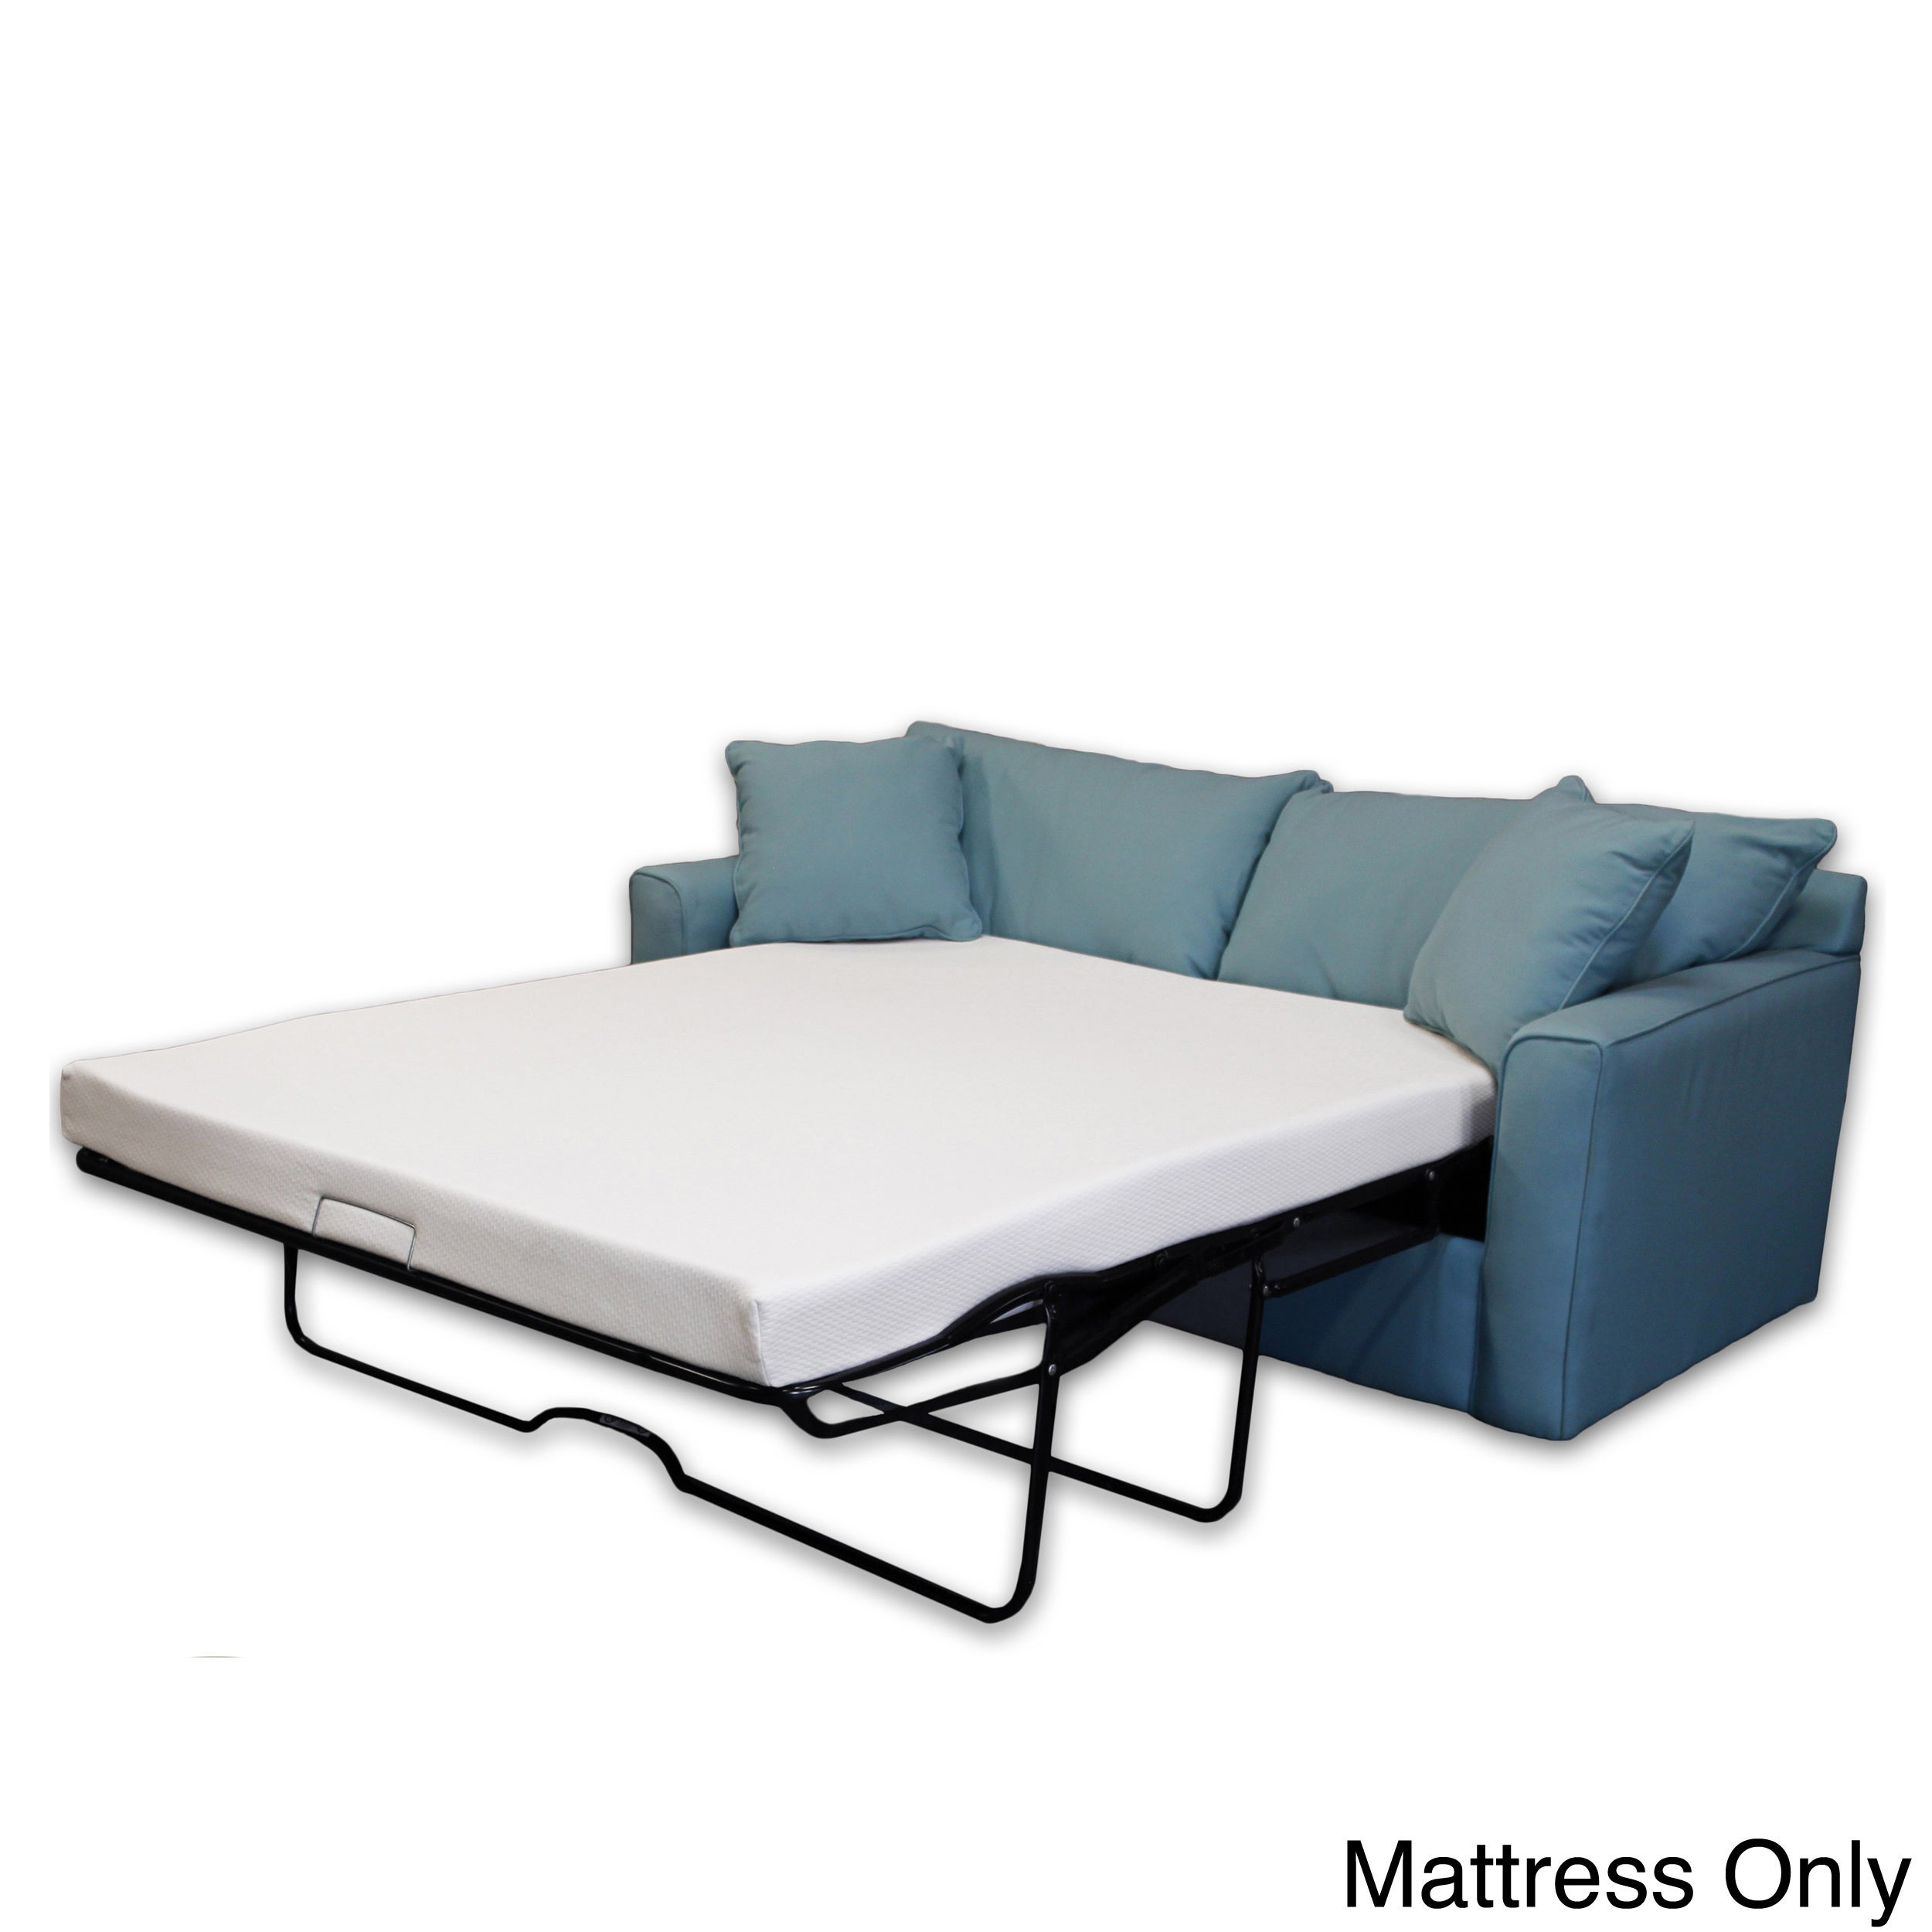 Mattress For A Sofa Bed Replacement